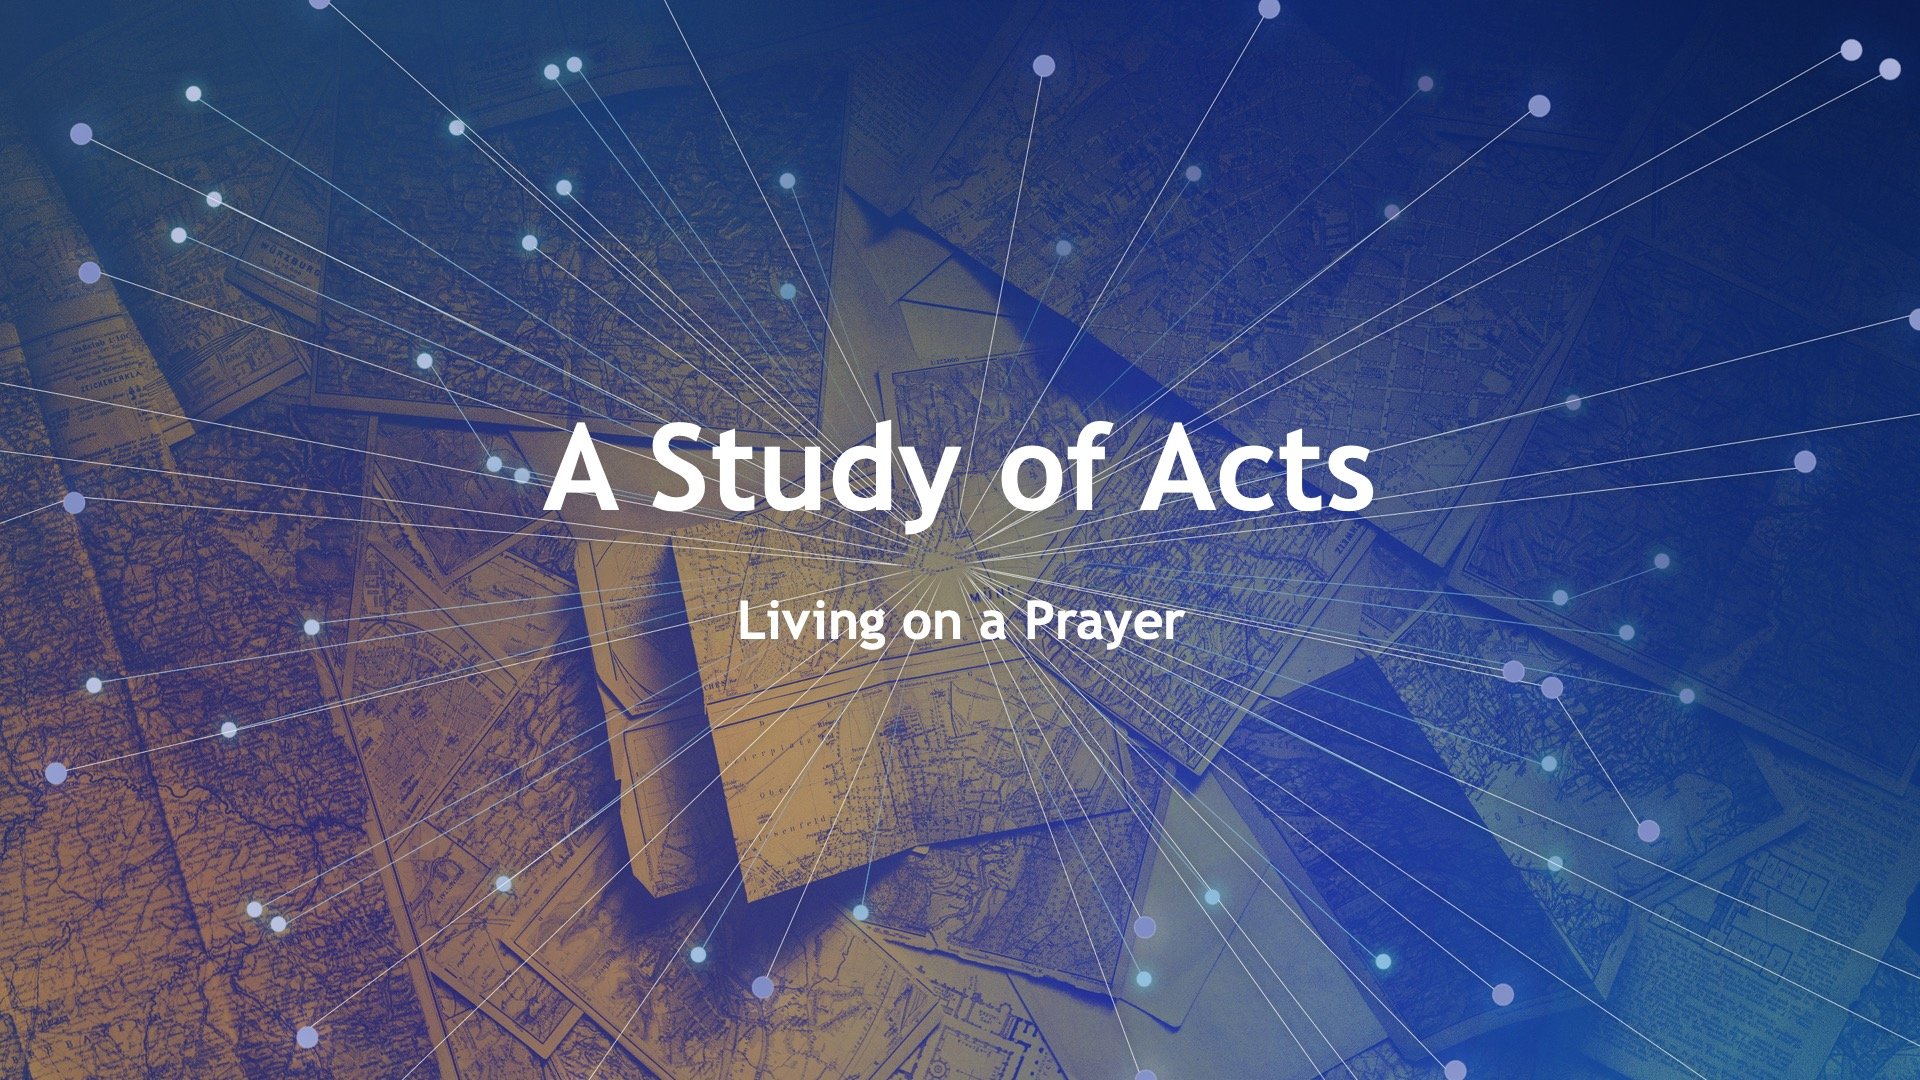 A Study of Acts Living on a Prayer